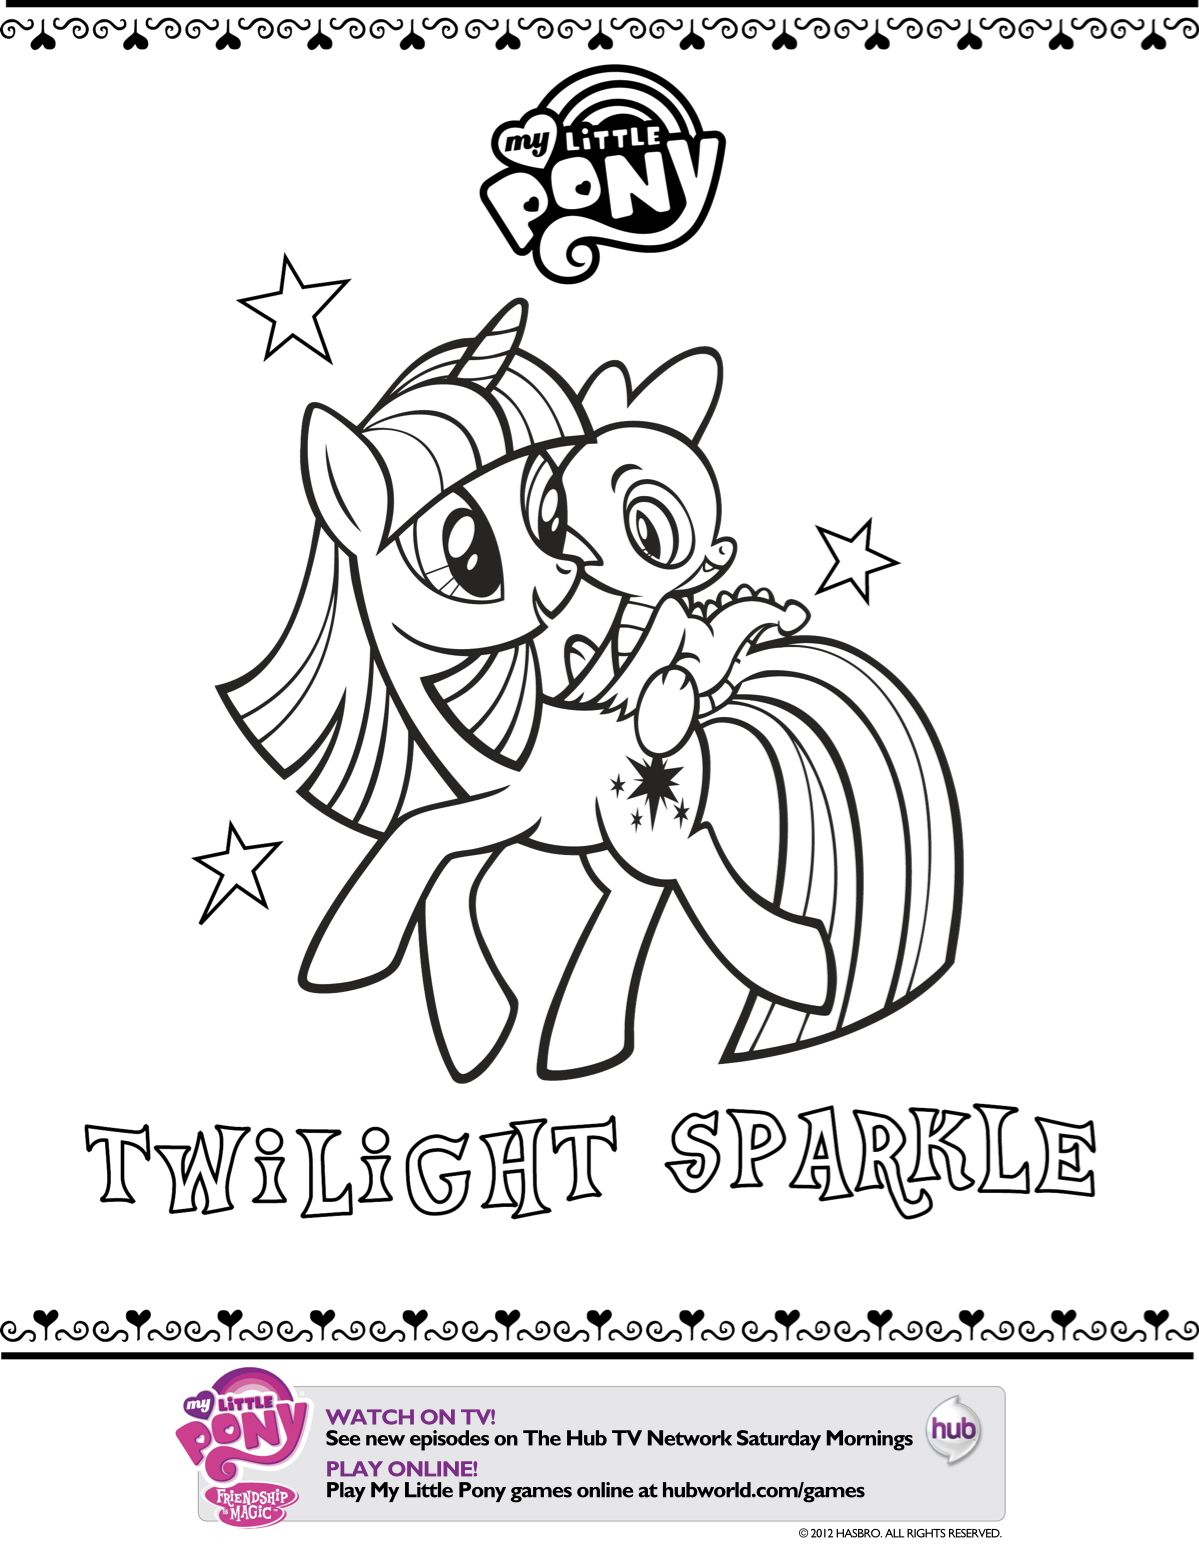 My little pony friendship magic coloring pages print - Mlp Printable Coloring Pages My Little Pony Twilight Sparkle Printable Coloring Page